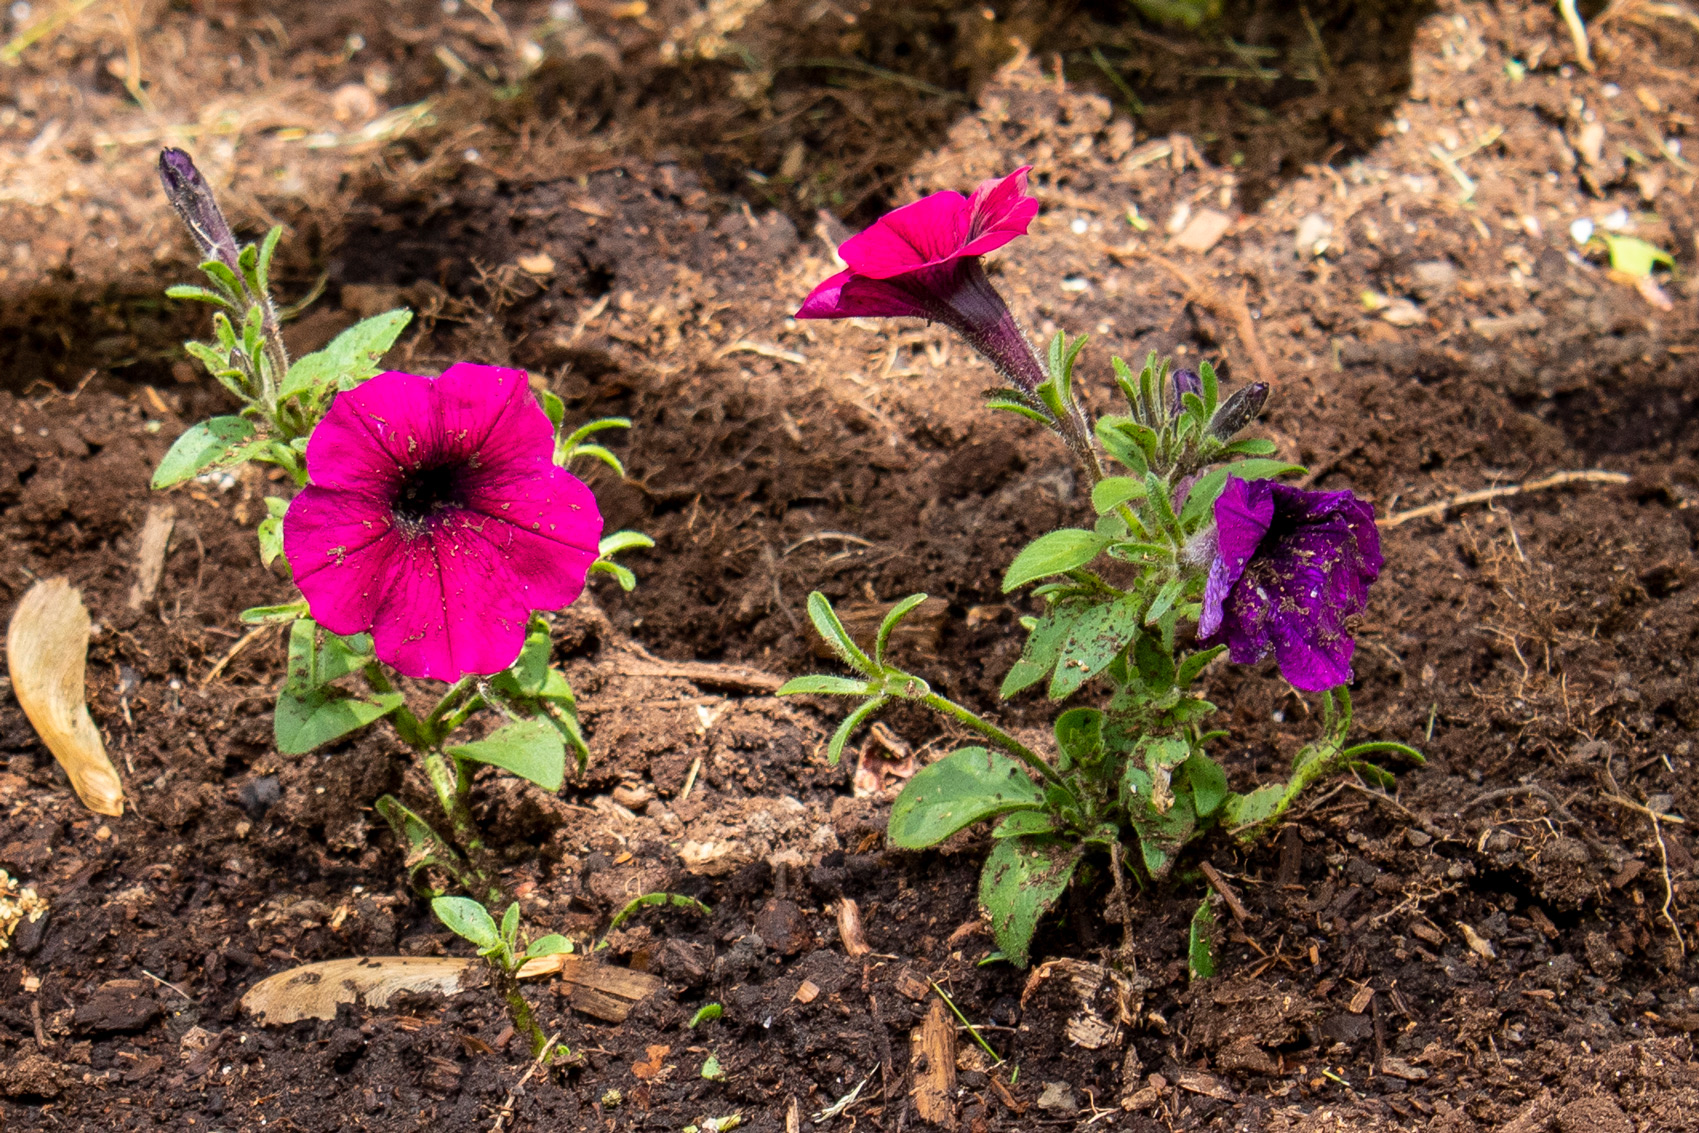 Two flowers, one a pinkish purple and the other a deeper, bluer, purple